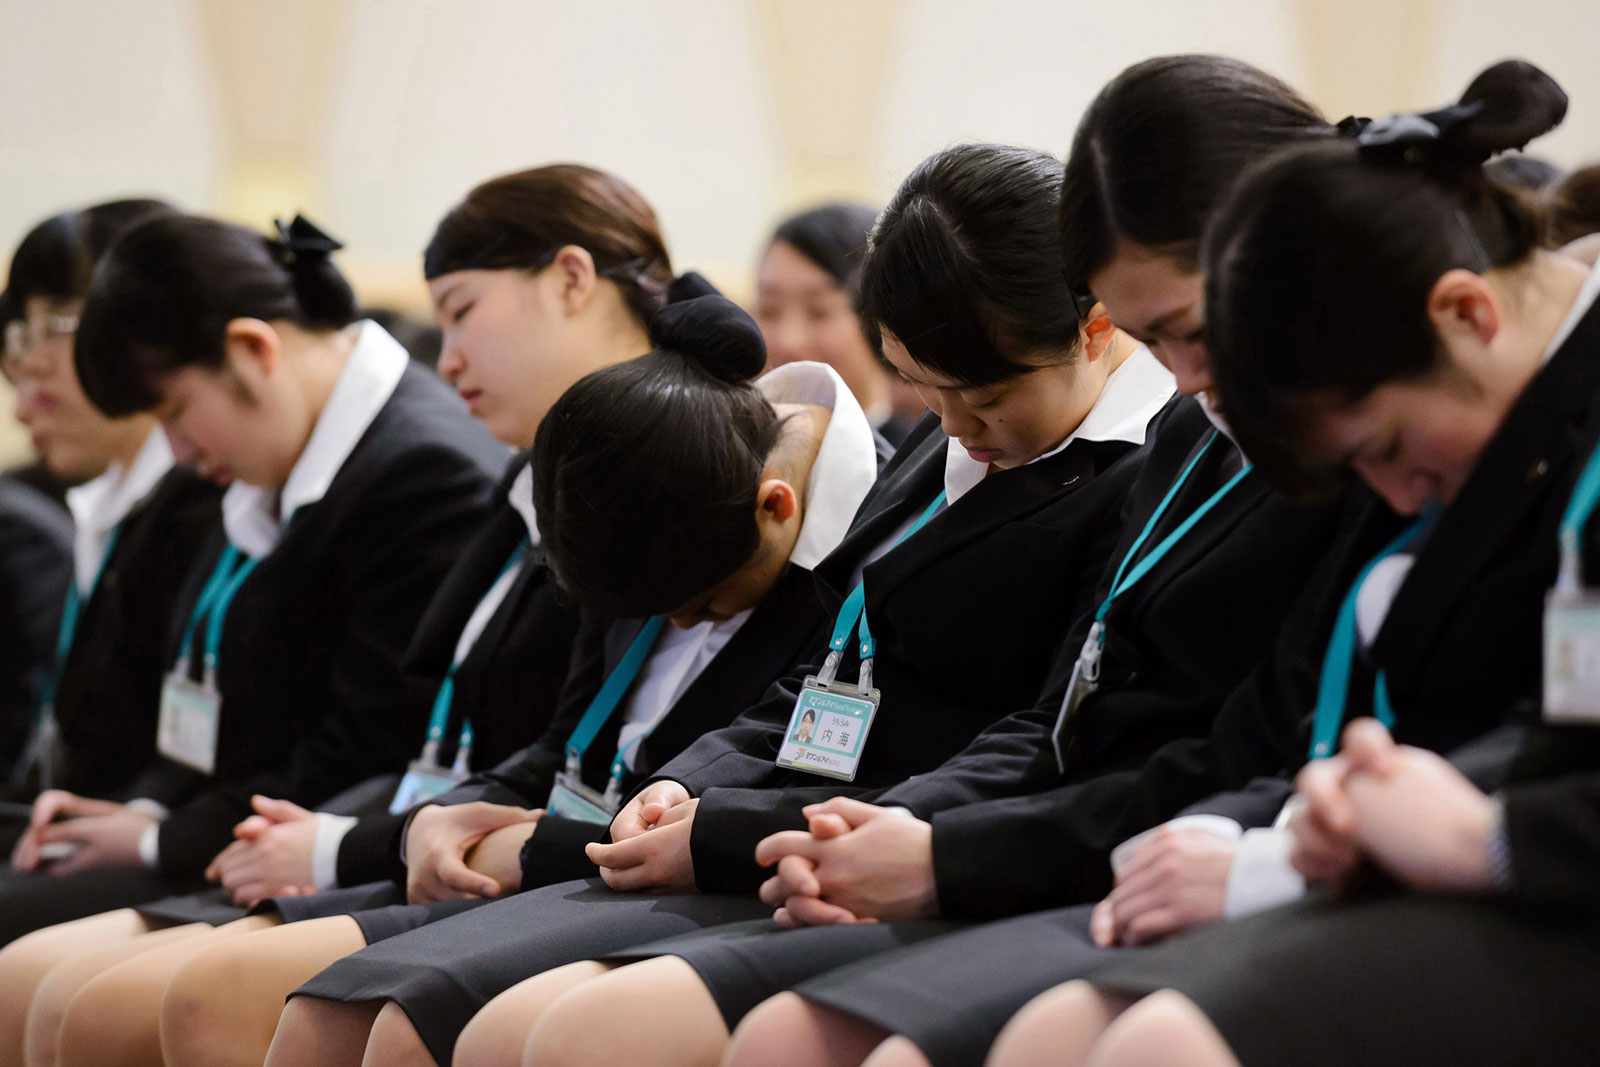 New Employees of Seven & I Holdings rest during an intermission of an initiation ceremony in Tokyo on Thursday, March 19, 2015.